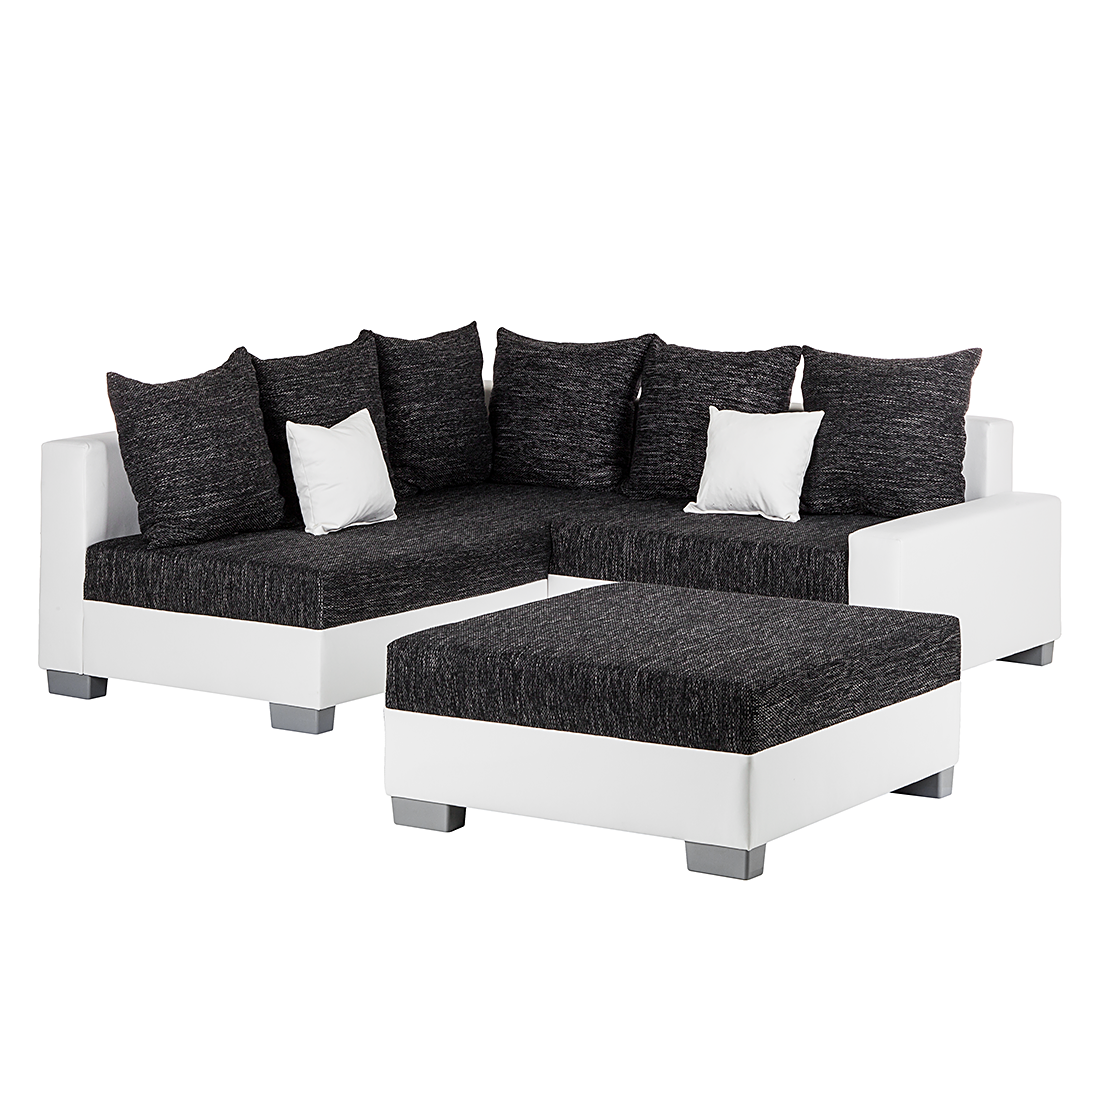 ecksofa mit hocker schwarz wei ottomane links eckcouch sofa couch neu ebay. Black Bedroom Furniture Sets. Home Design Ideas